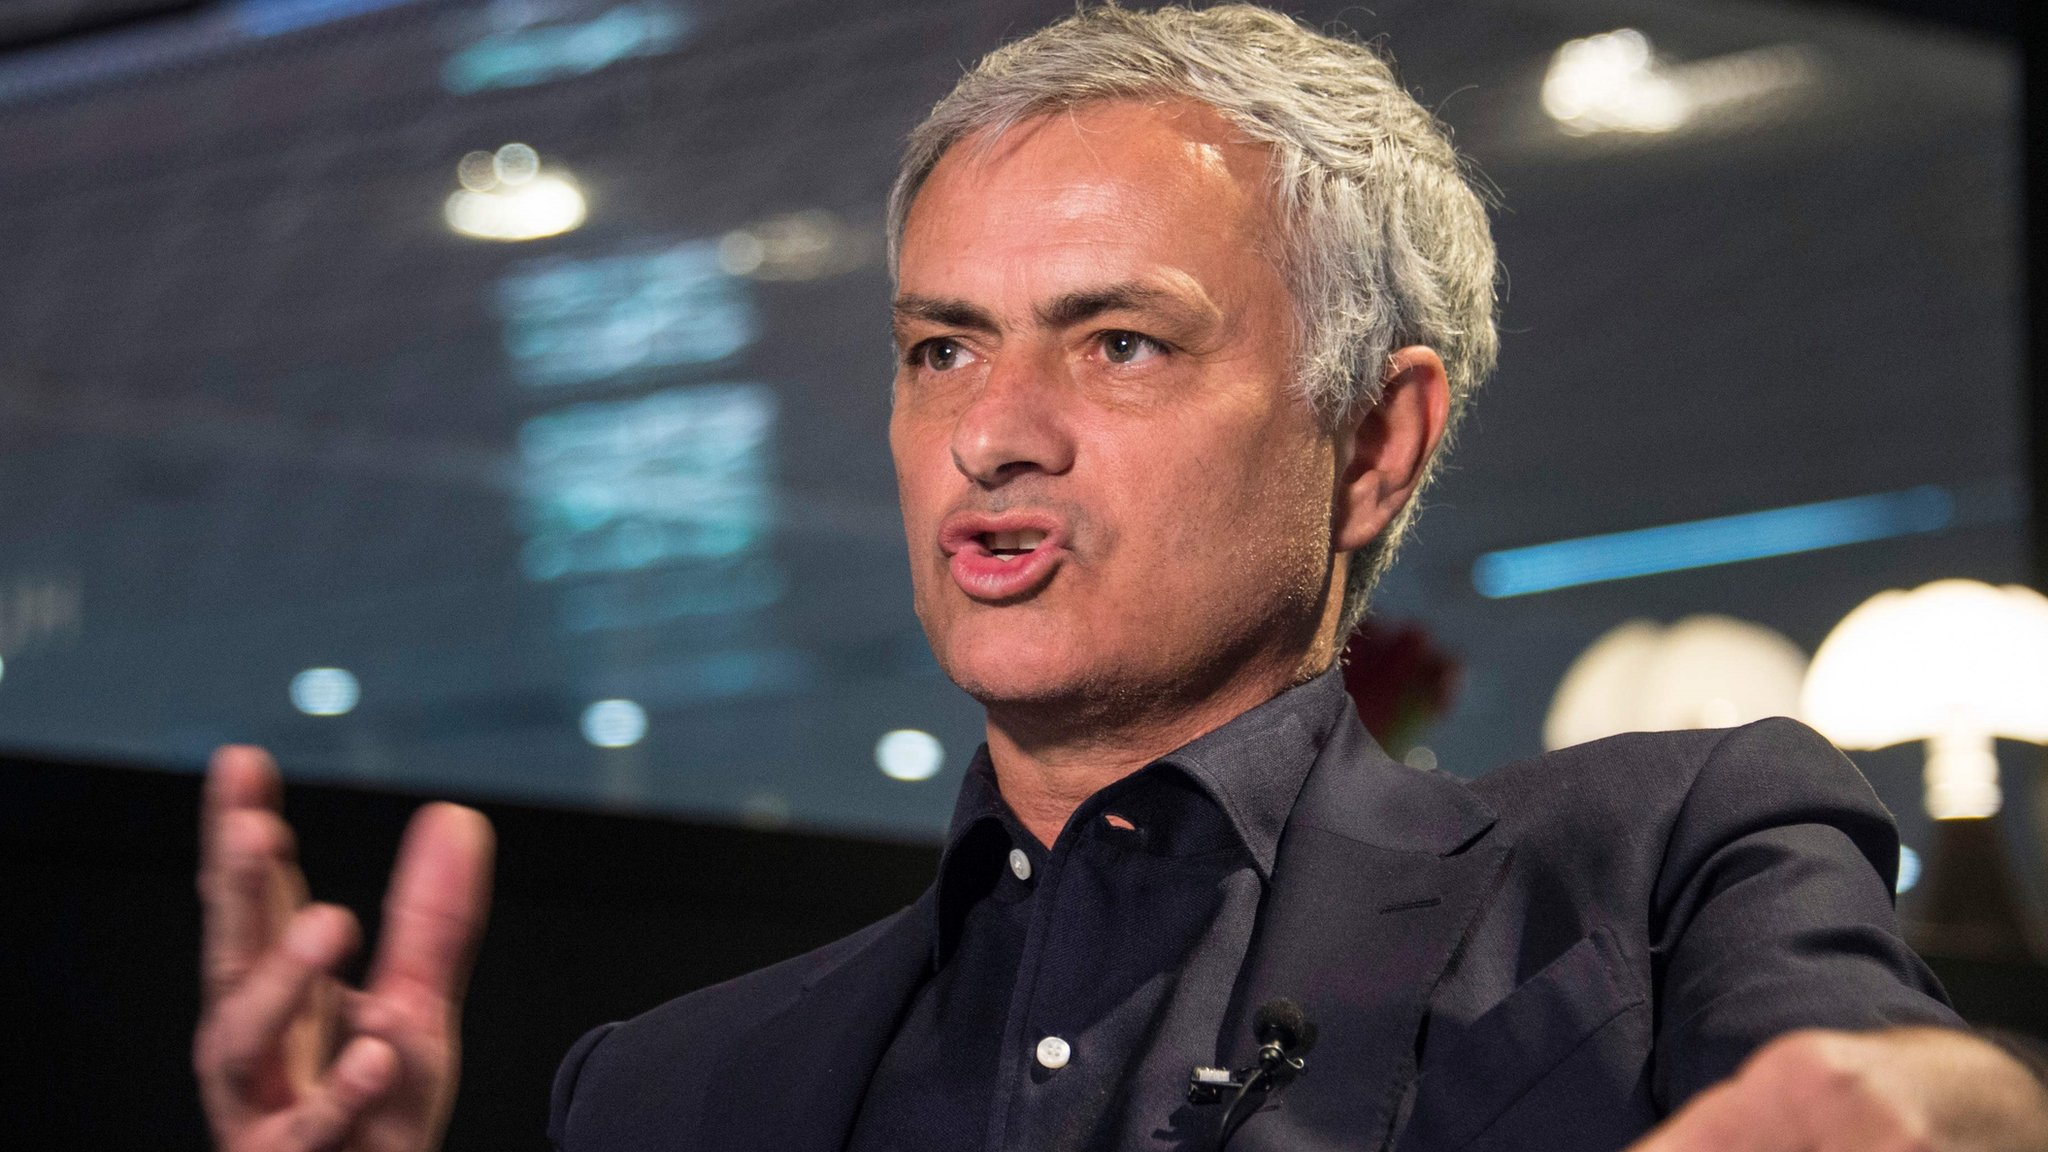 Jose Mourinho: Ex-Man Utd boss eyes summer return to management